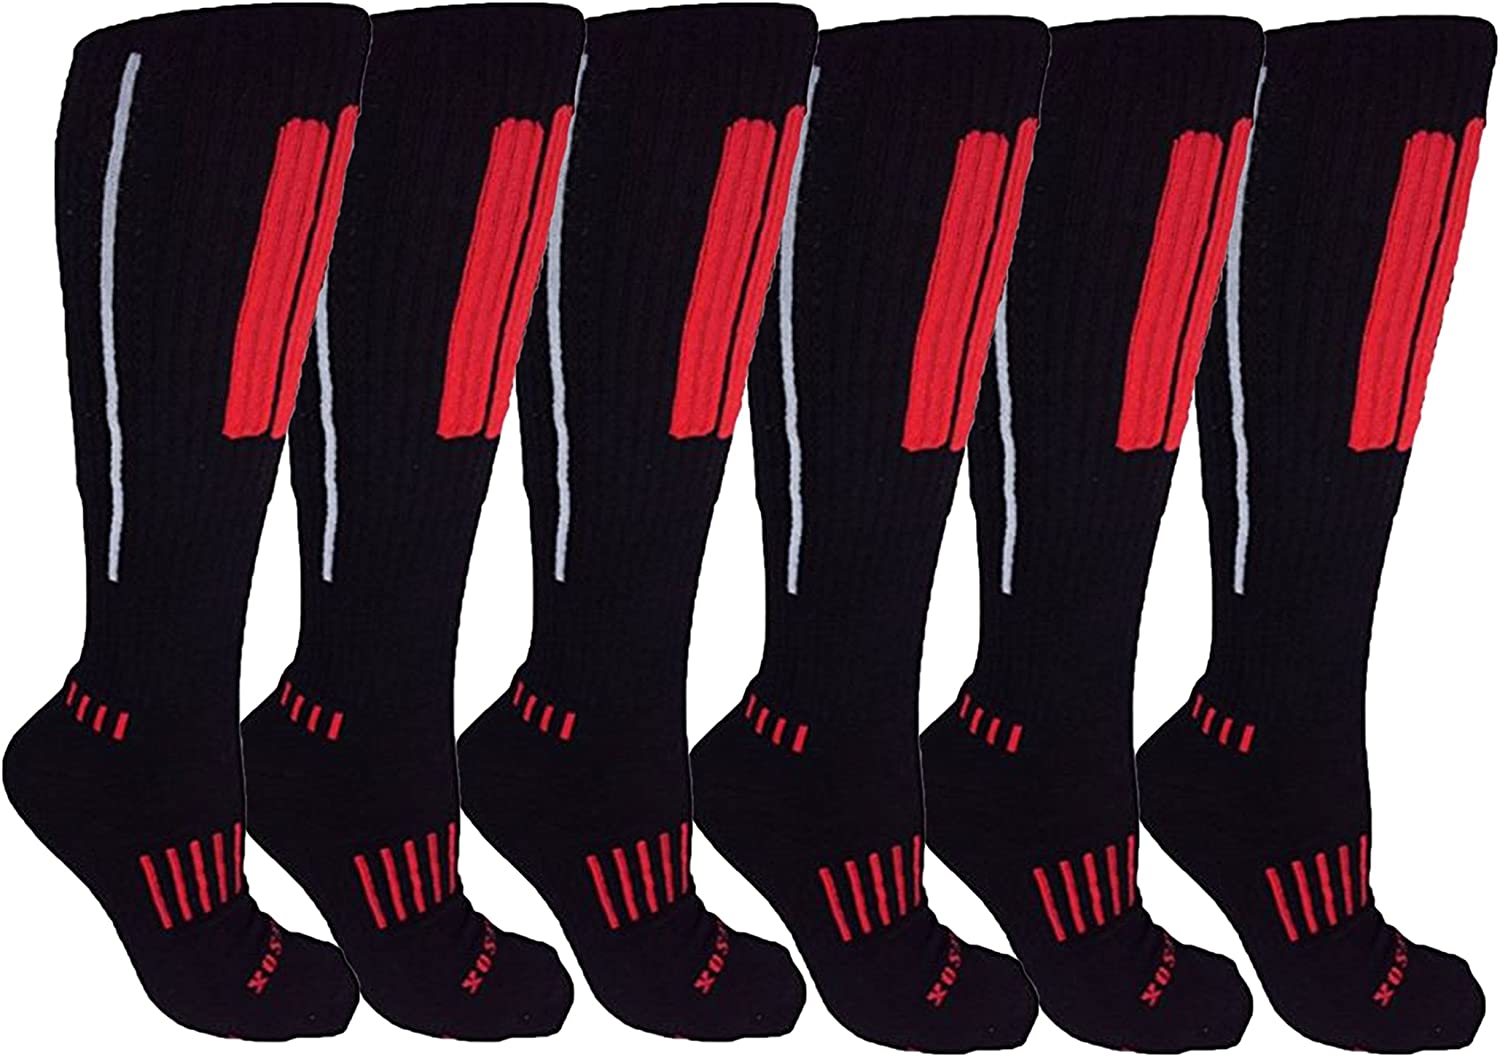 MOXY Socks 6Pack KneeHigh Black Red Grey Performance Deadlift APeX Socks